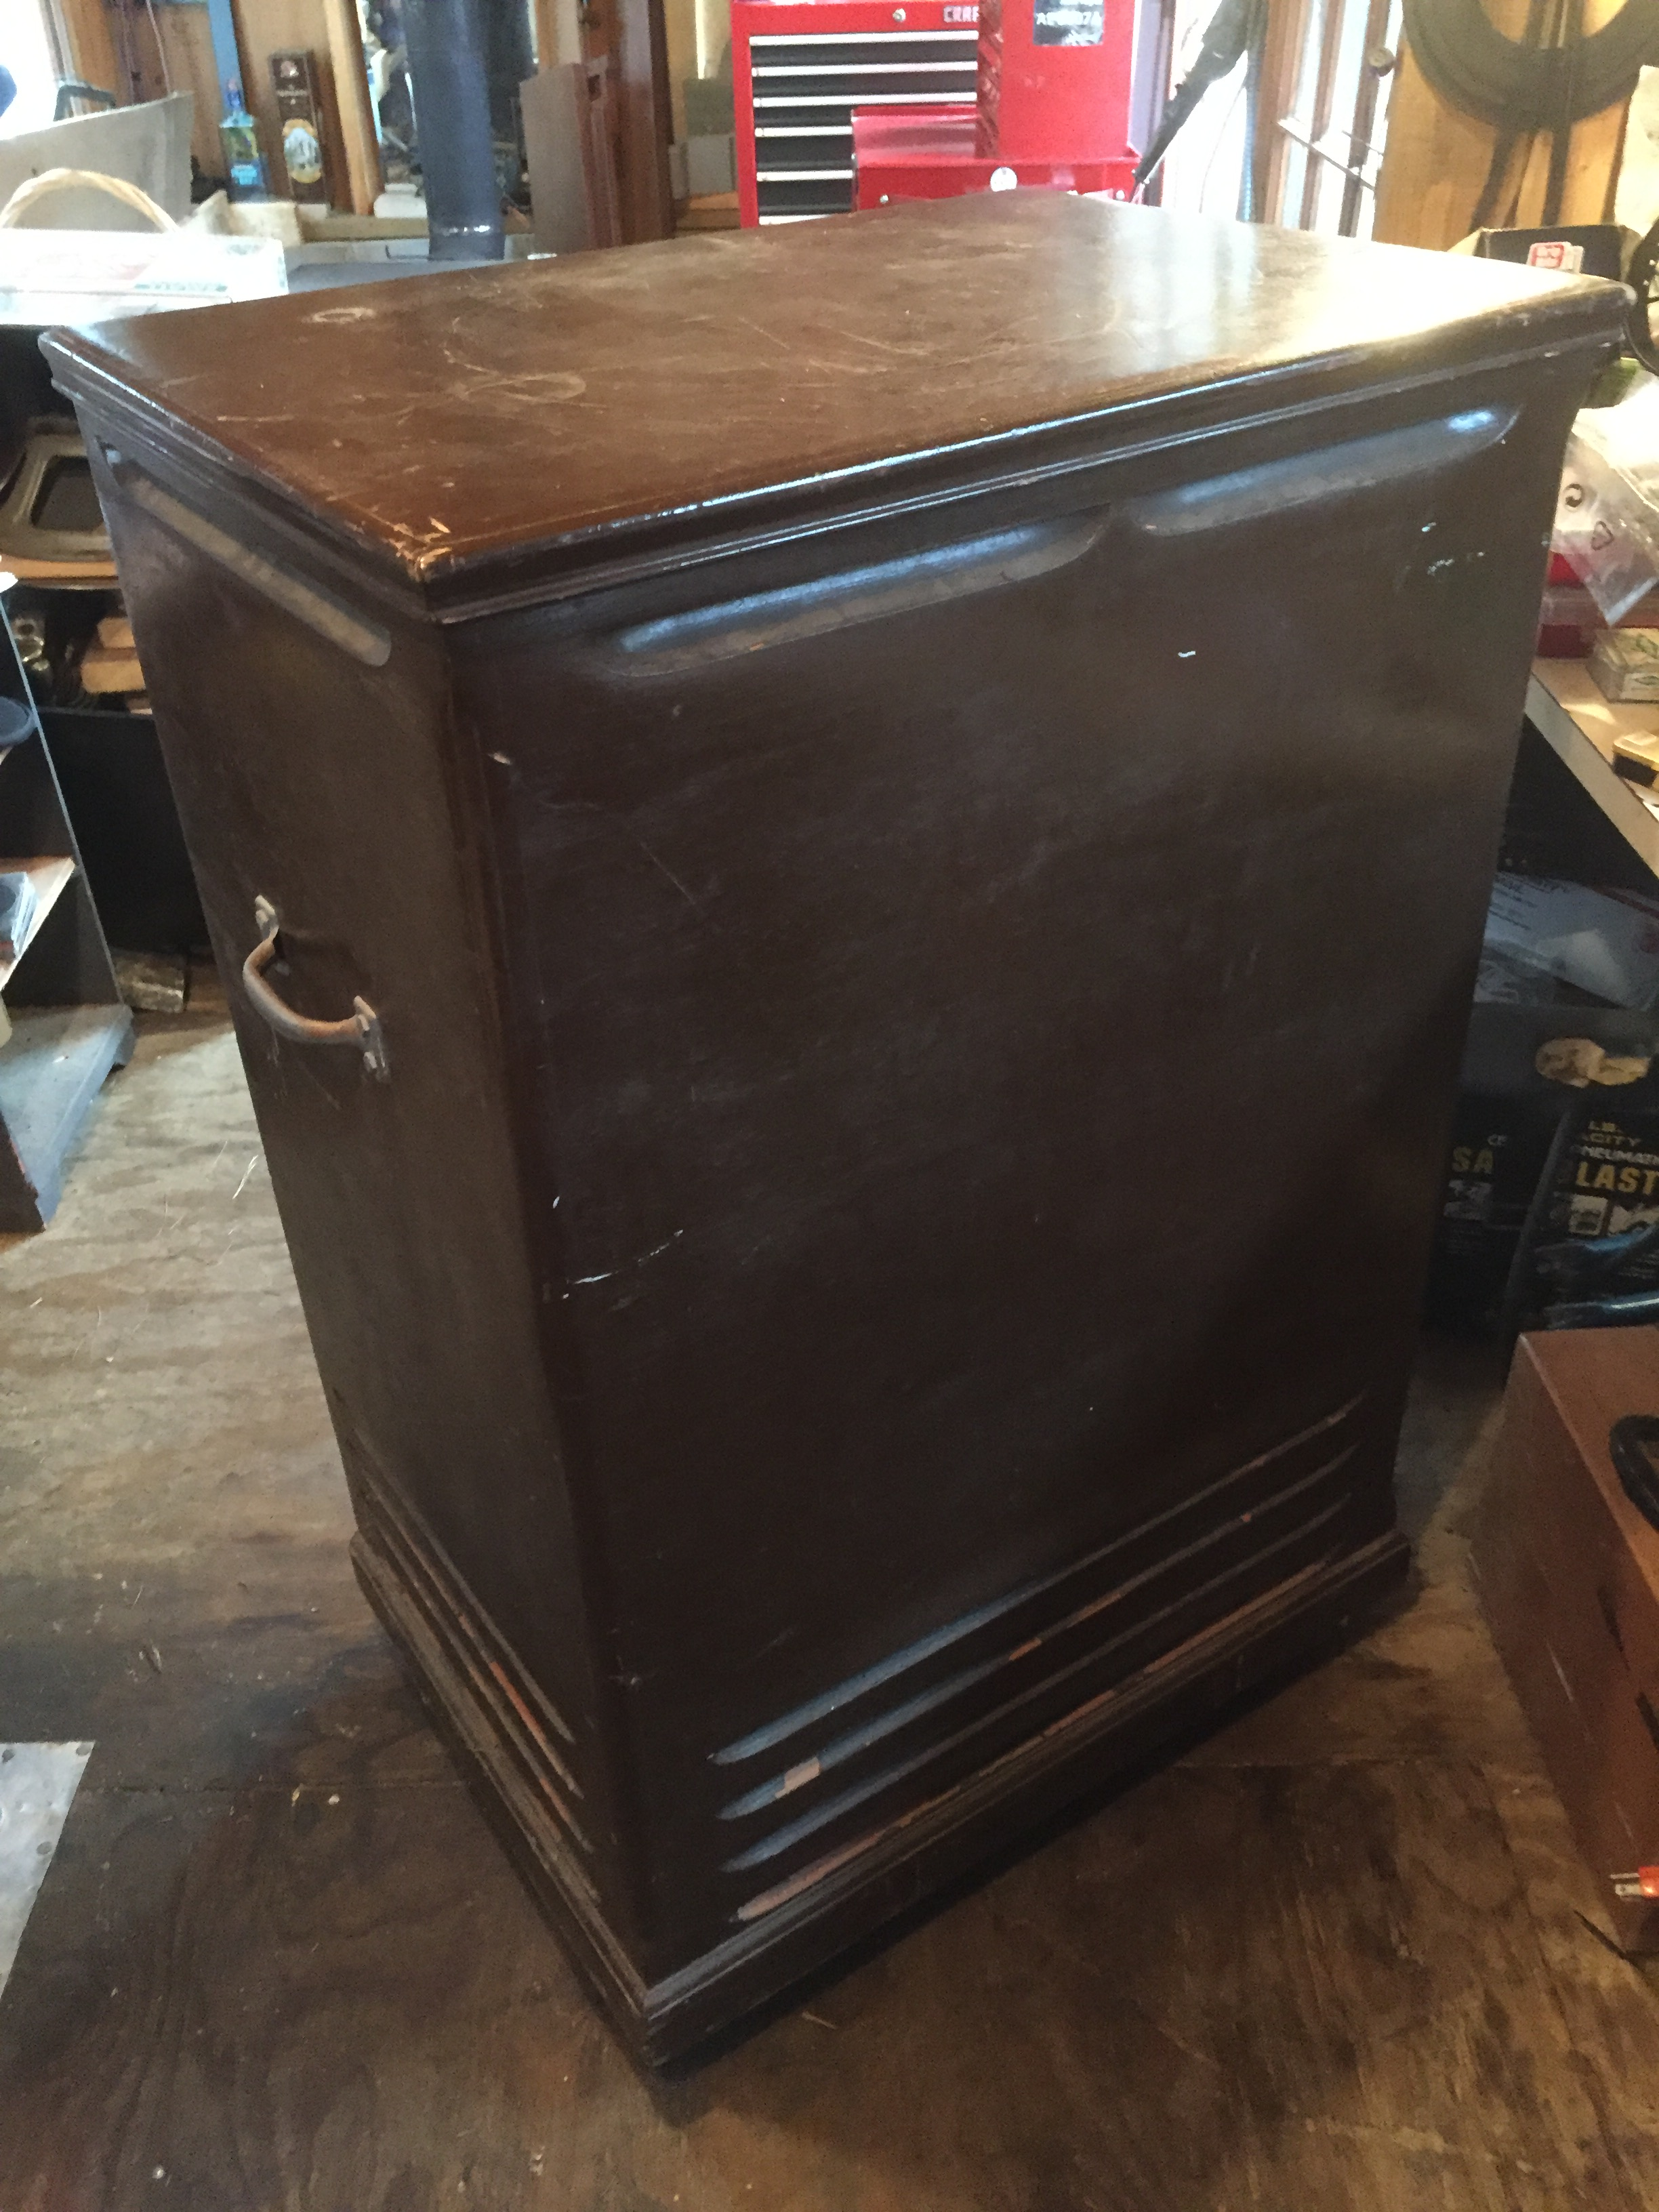 Cabinet needs repair. P ainted brown, with handles and wobbly casters